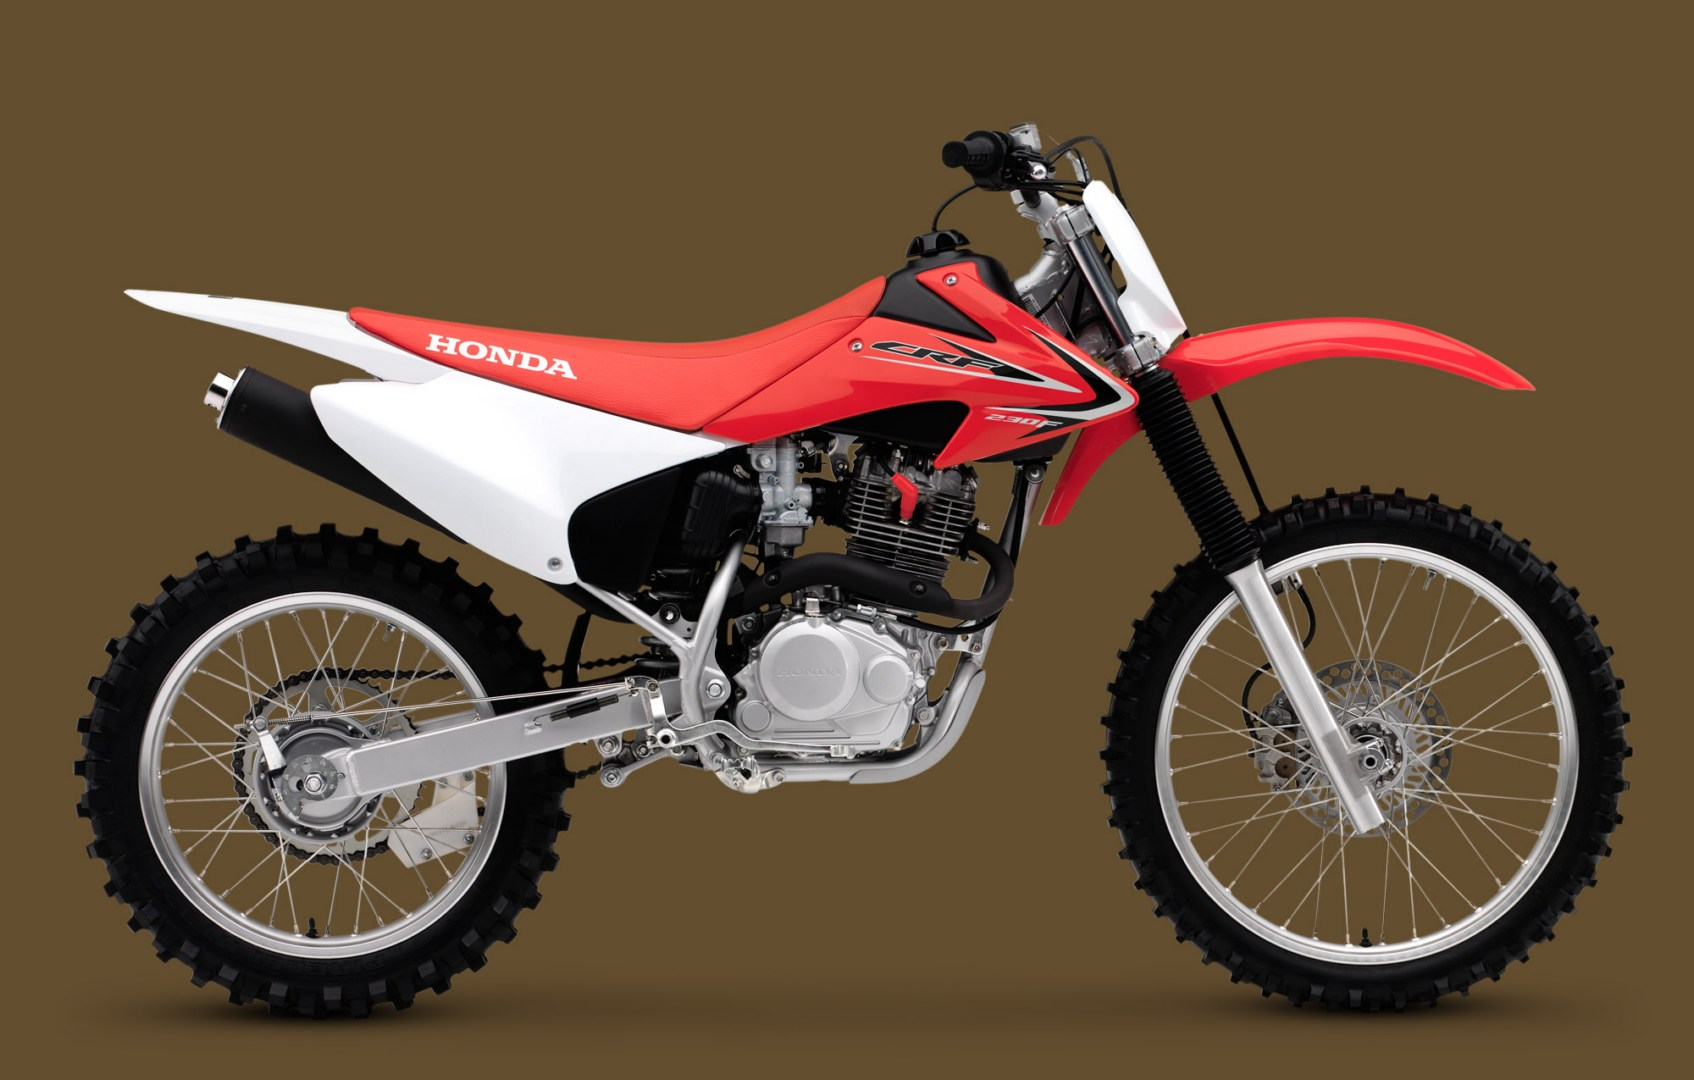 Honda crf230f photo - 1